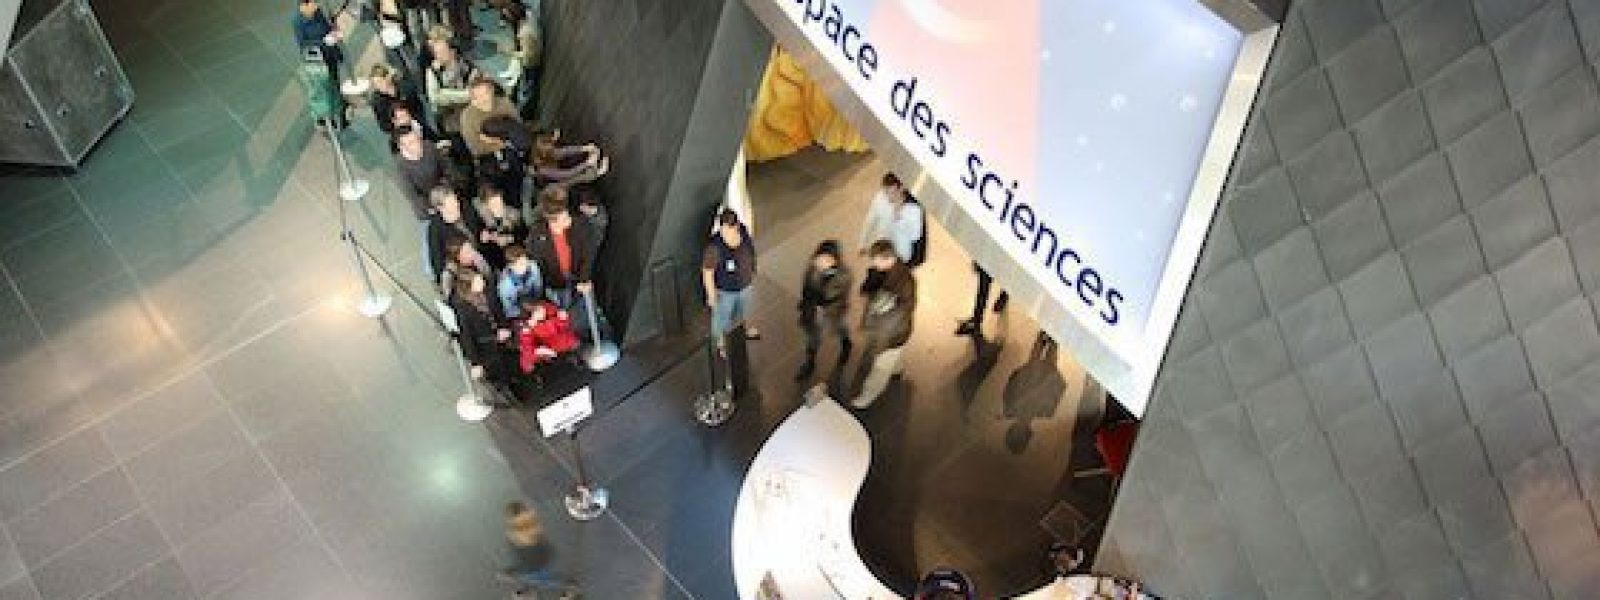 Horaires-musees-rennes